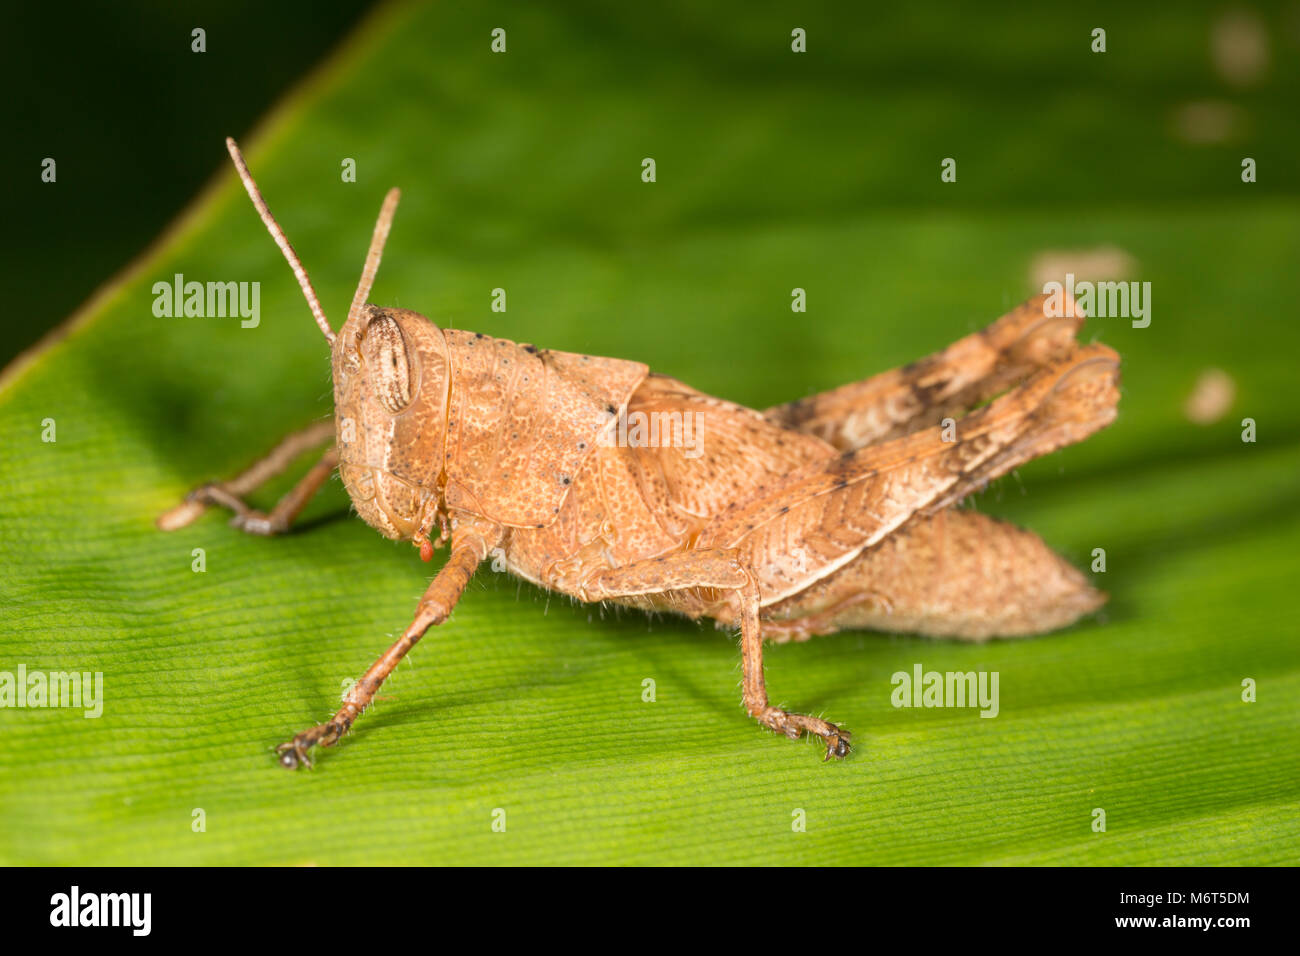 Grasshopper photographed near Botapassie, Suriname - Stock Image